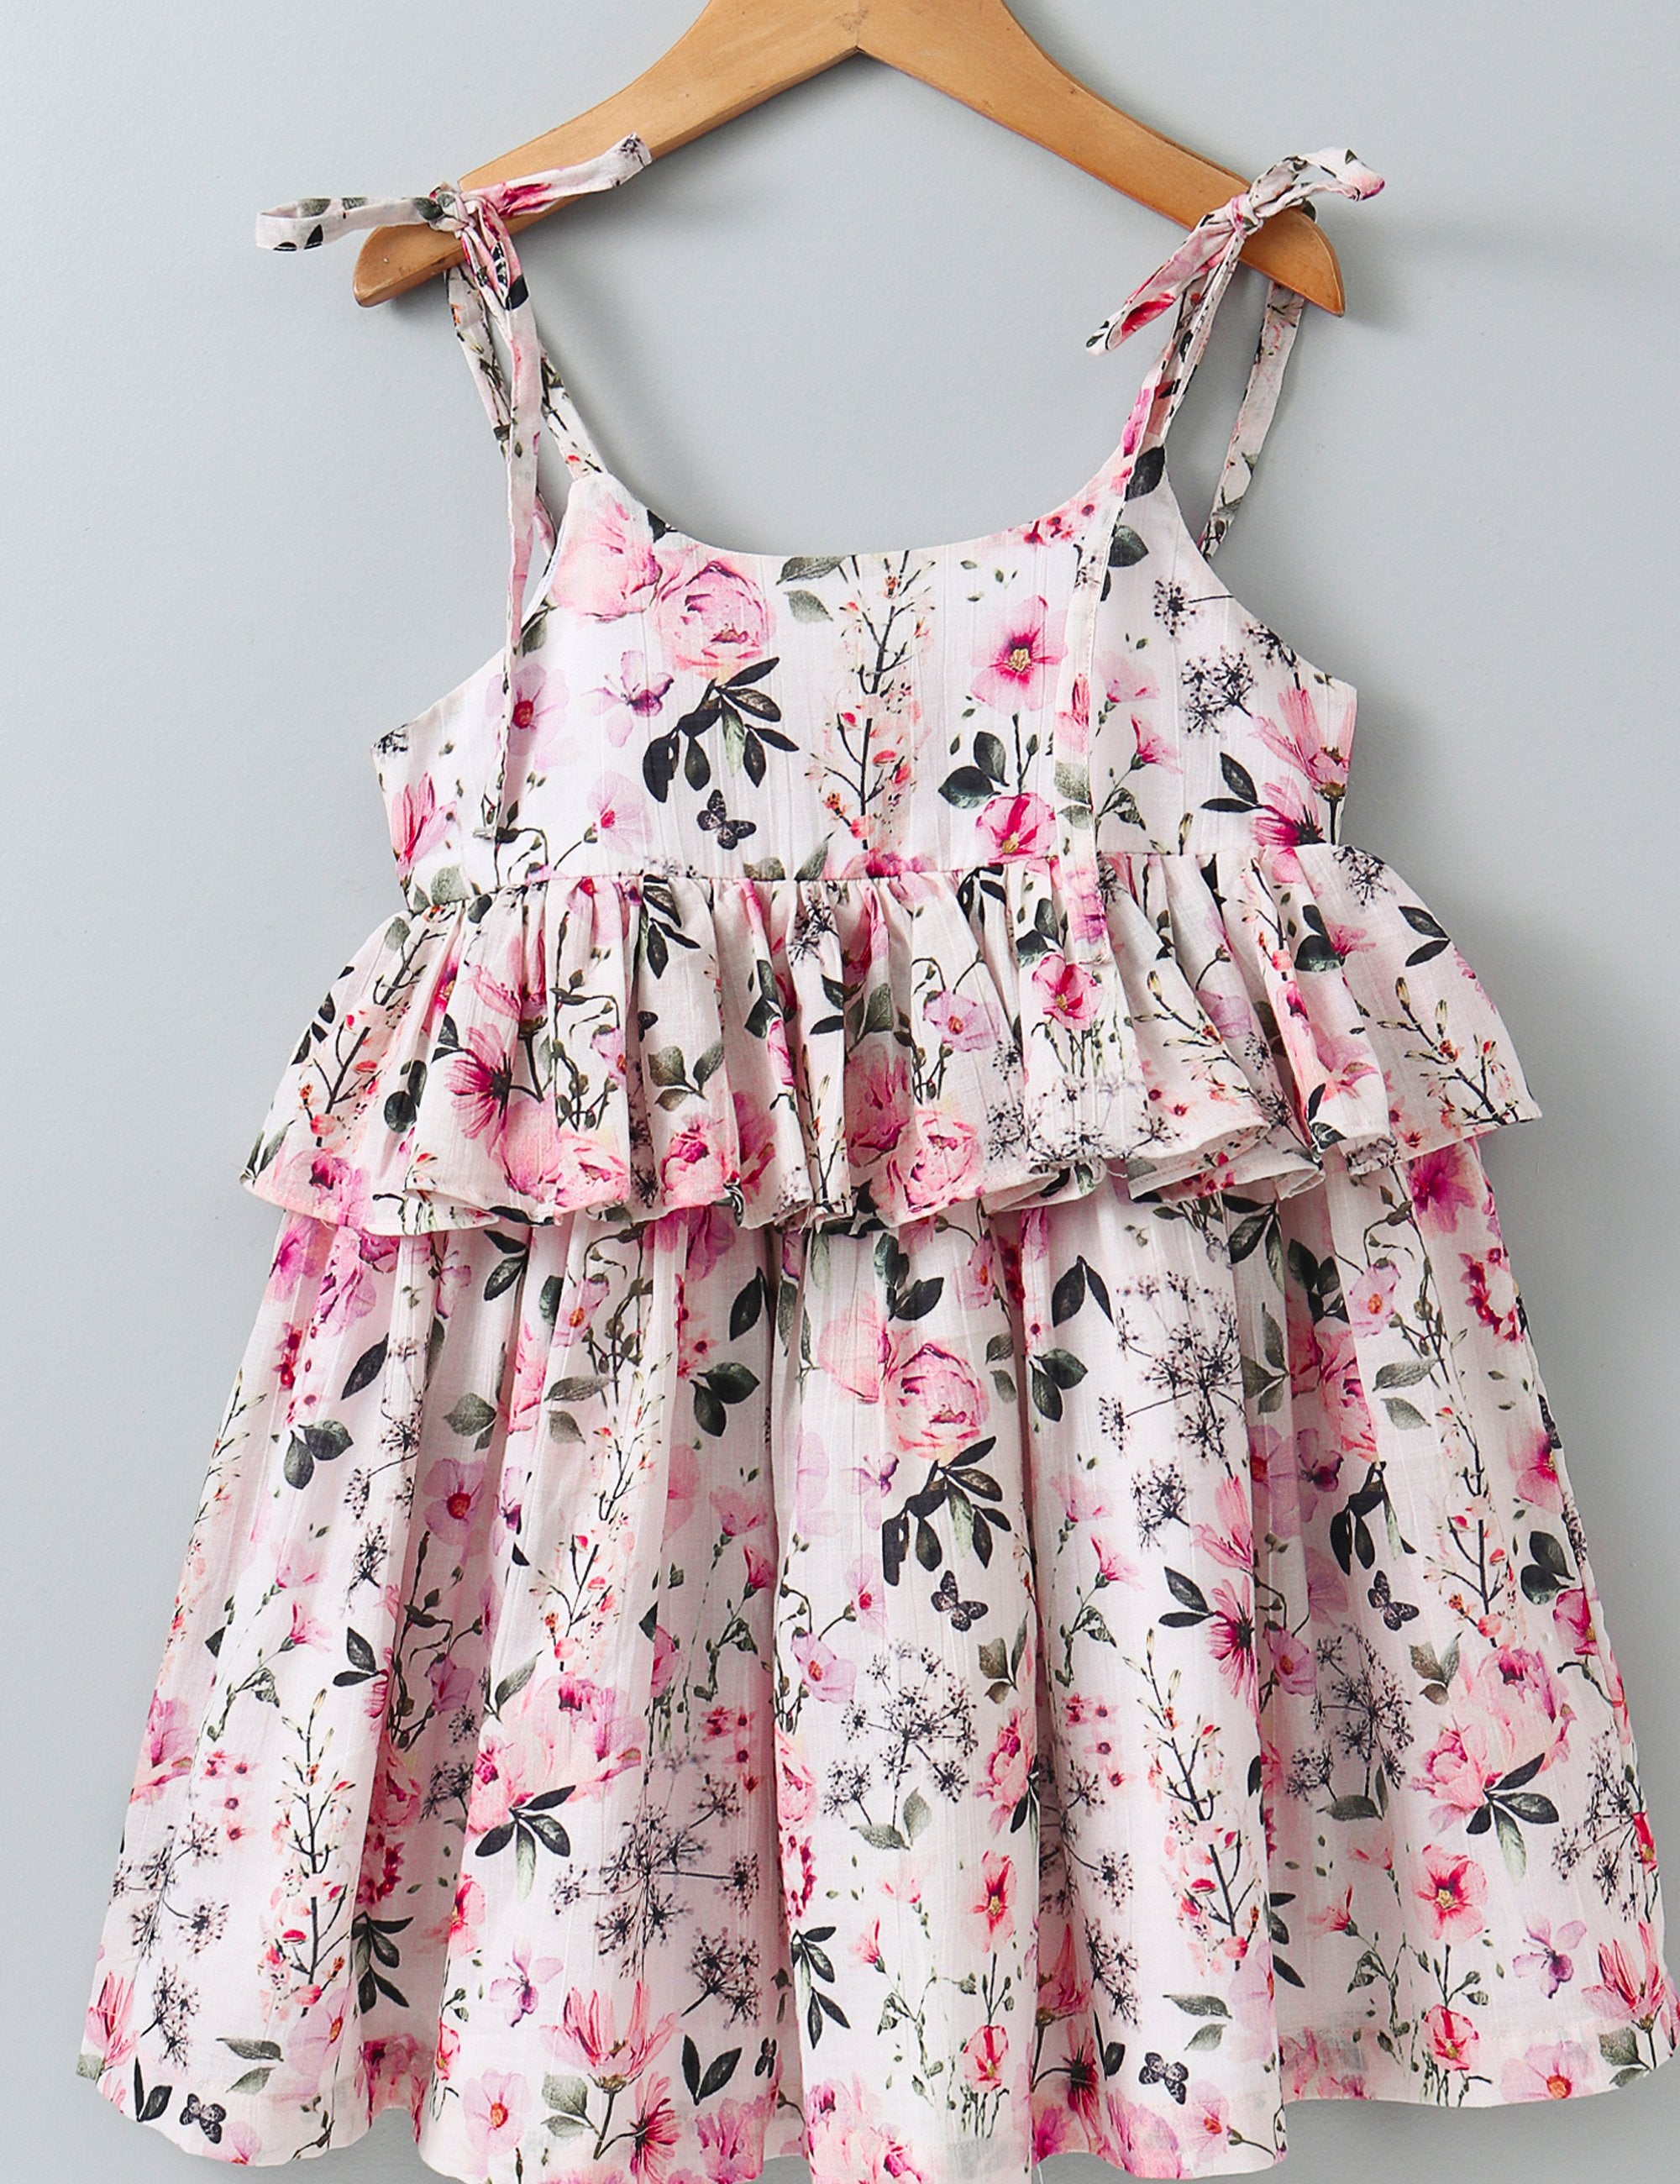 Rose Print Sleeveless Dress - Pink